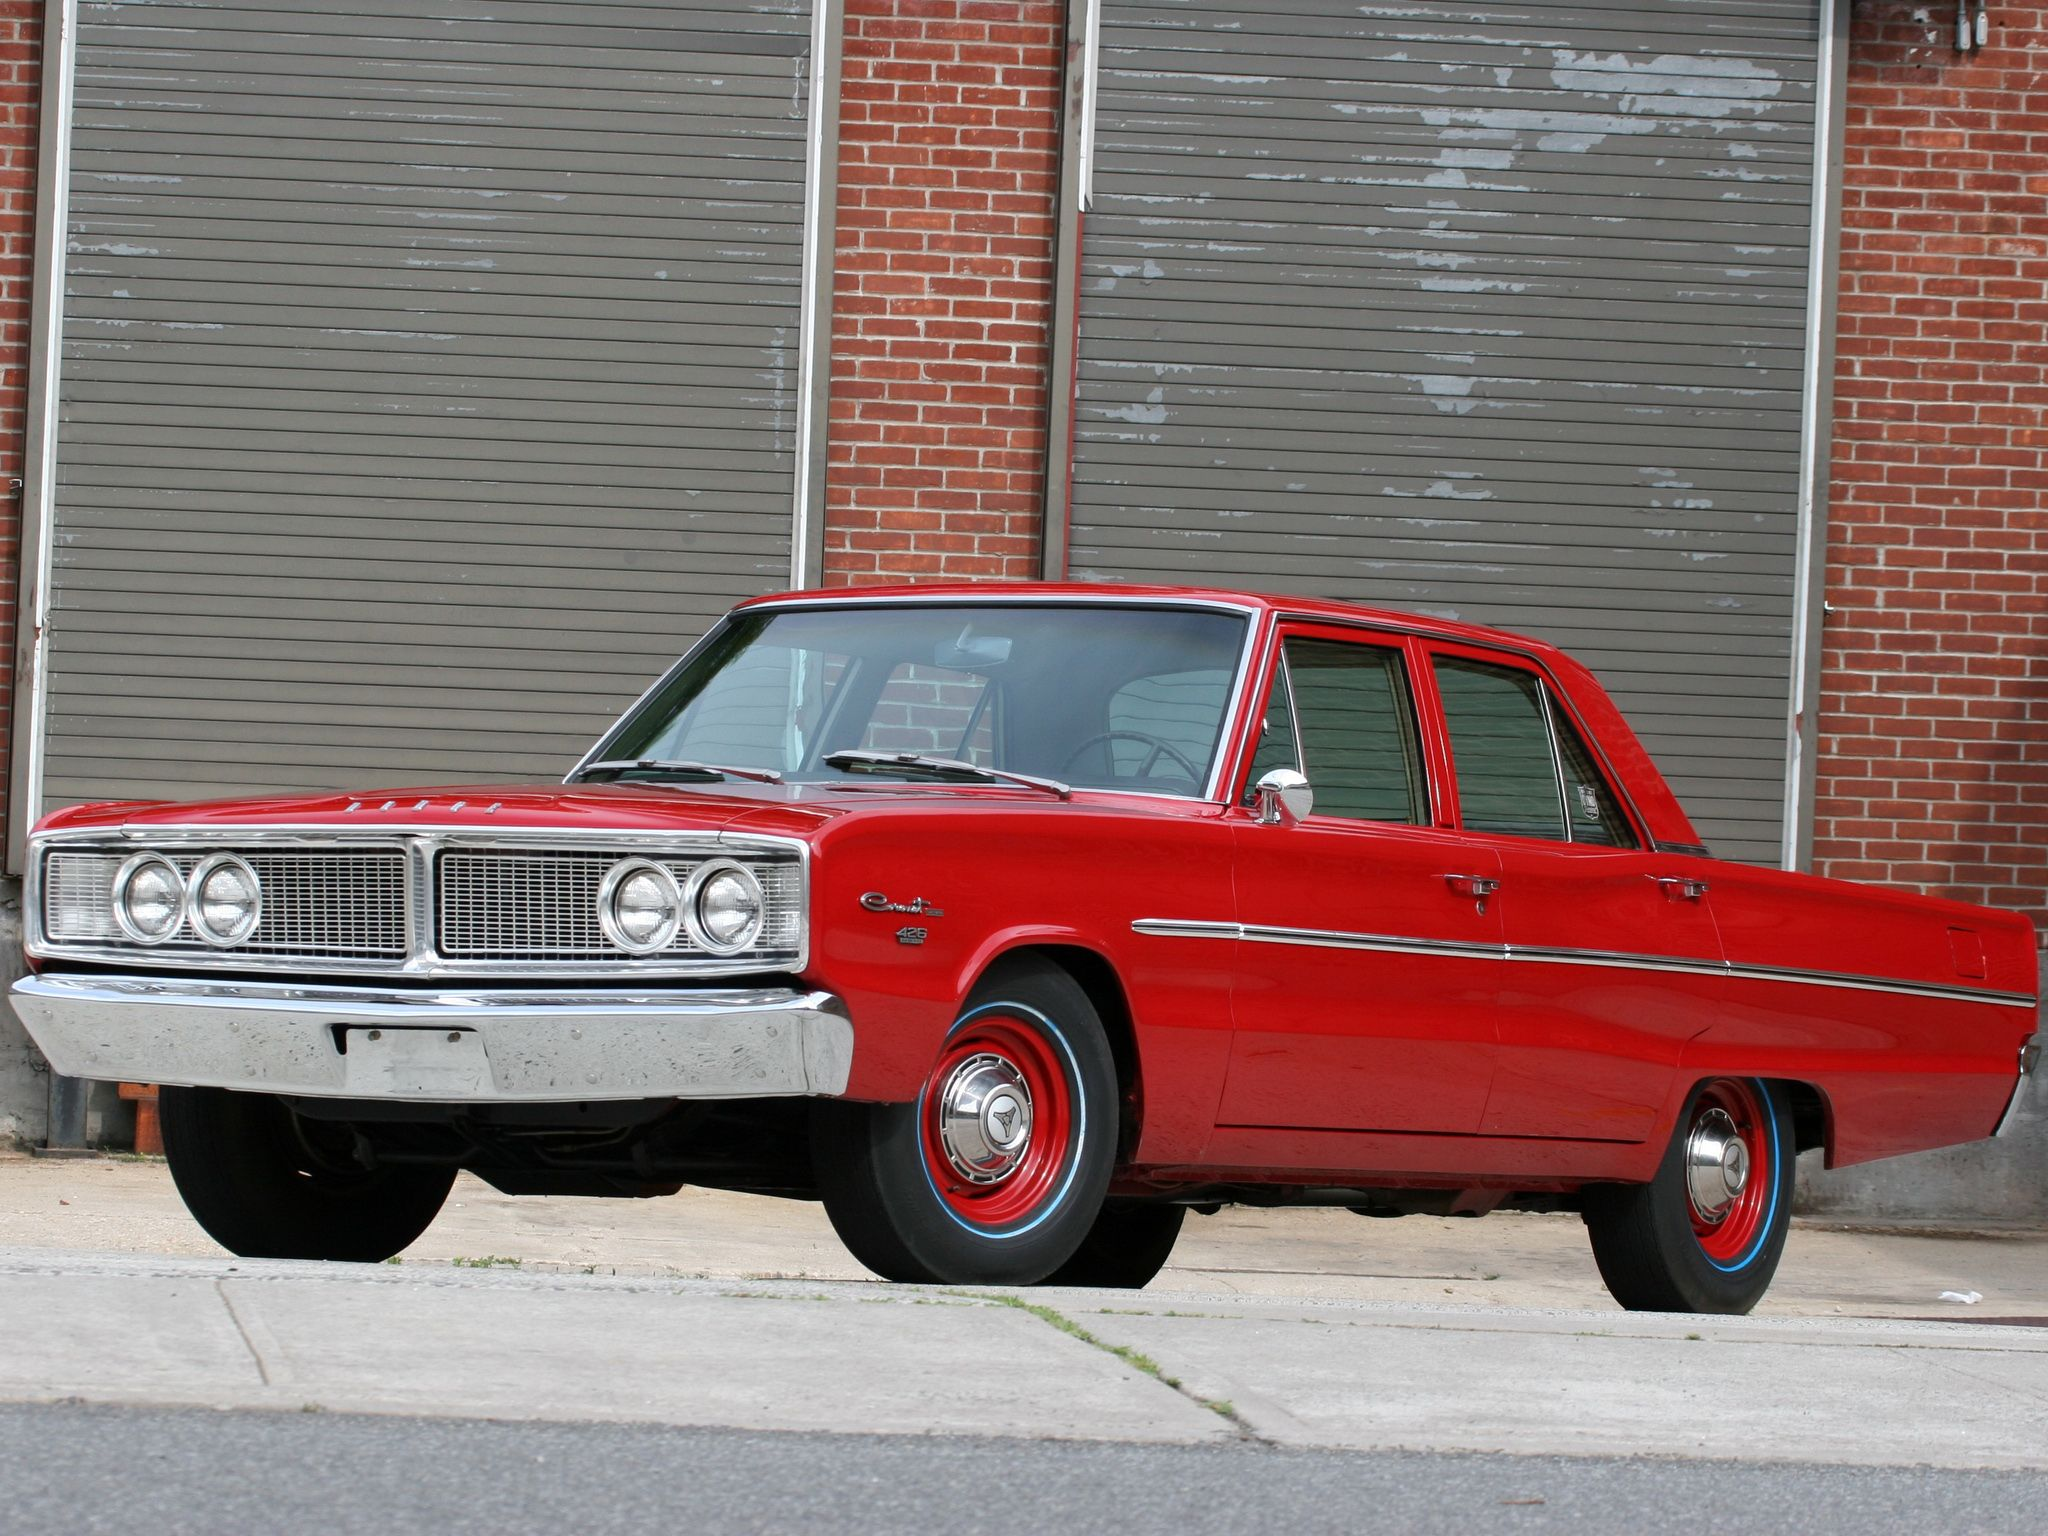 1966 Dodge Coronet 400 | Mopar | Pinterest | Muscle cars list ...